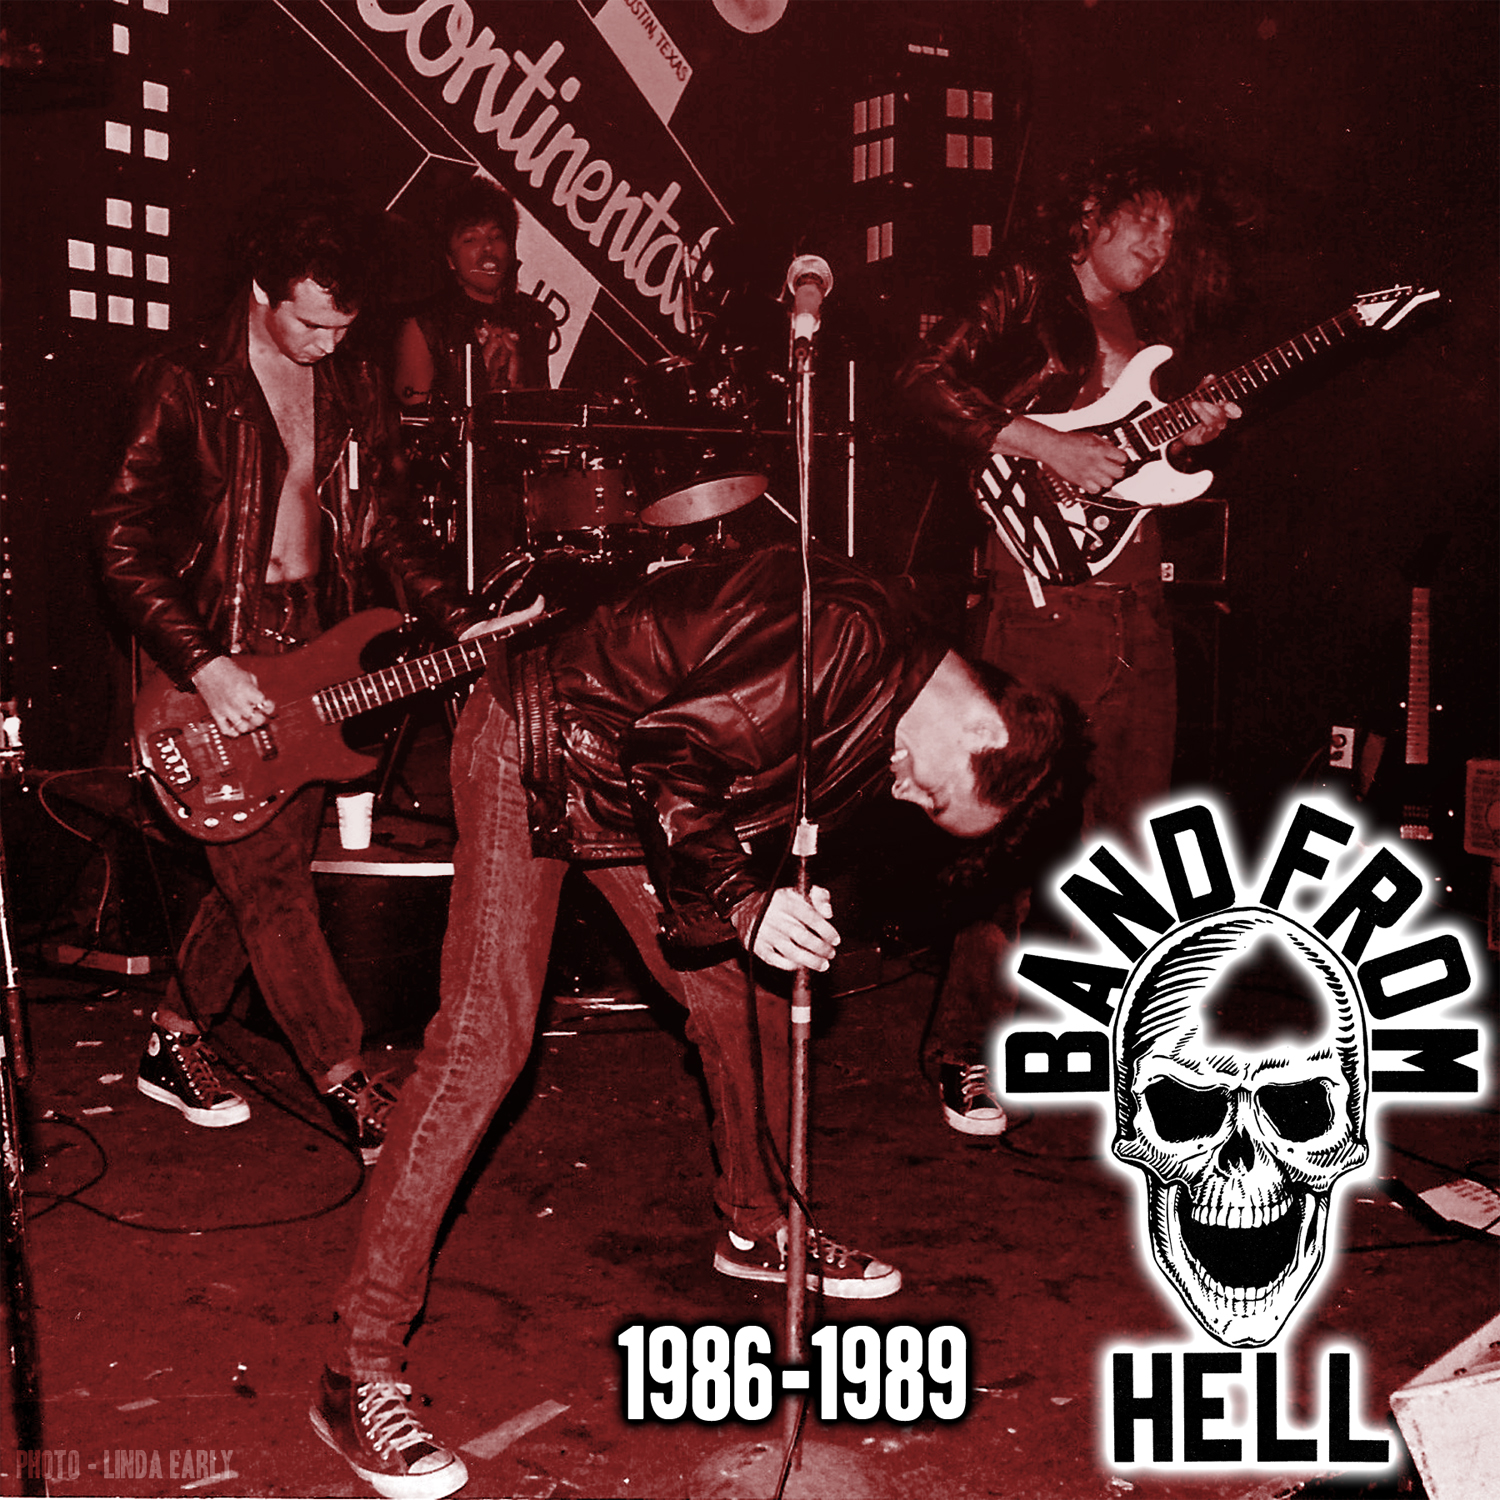 BAND FROM HELL